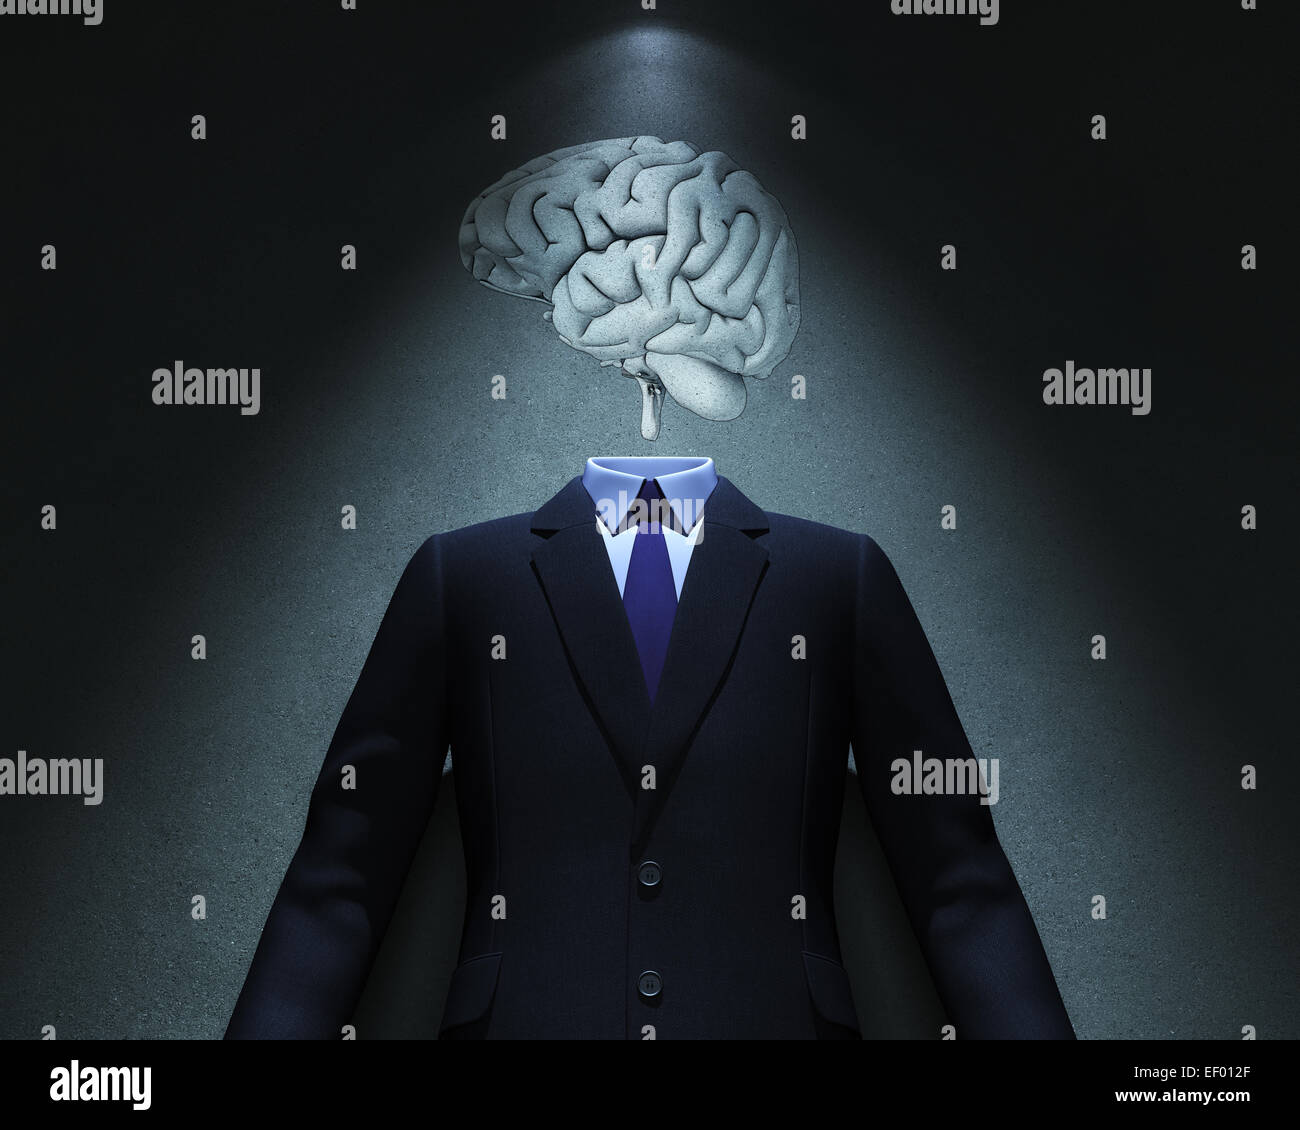 Brain and Suit in spot of light - Stock Image